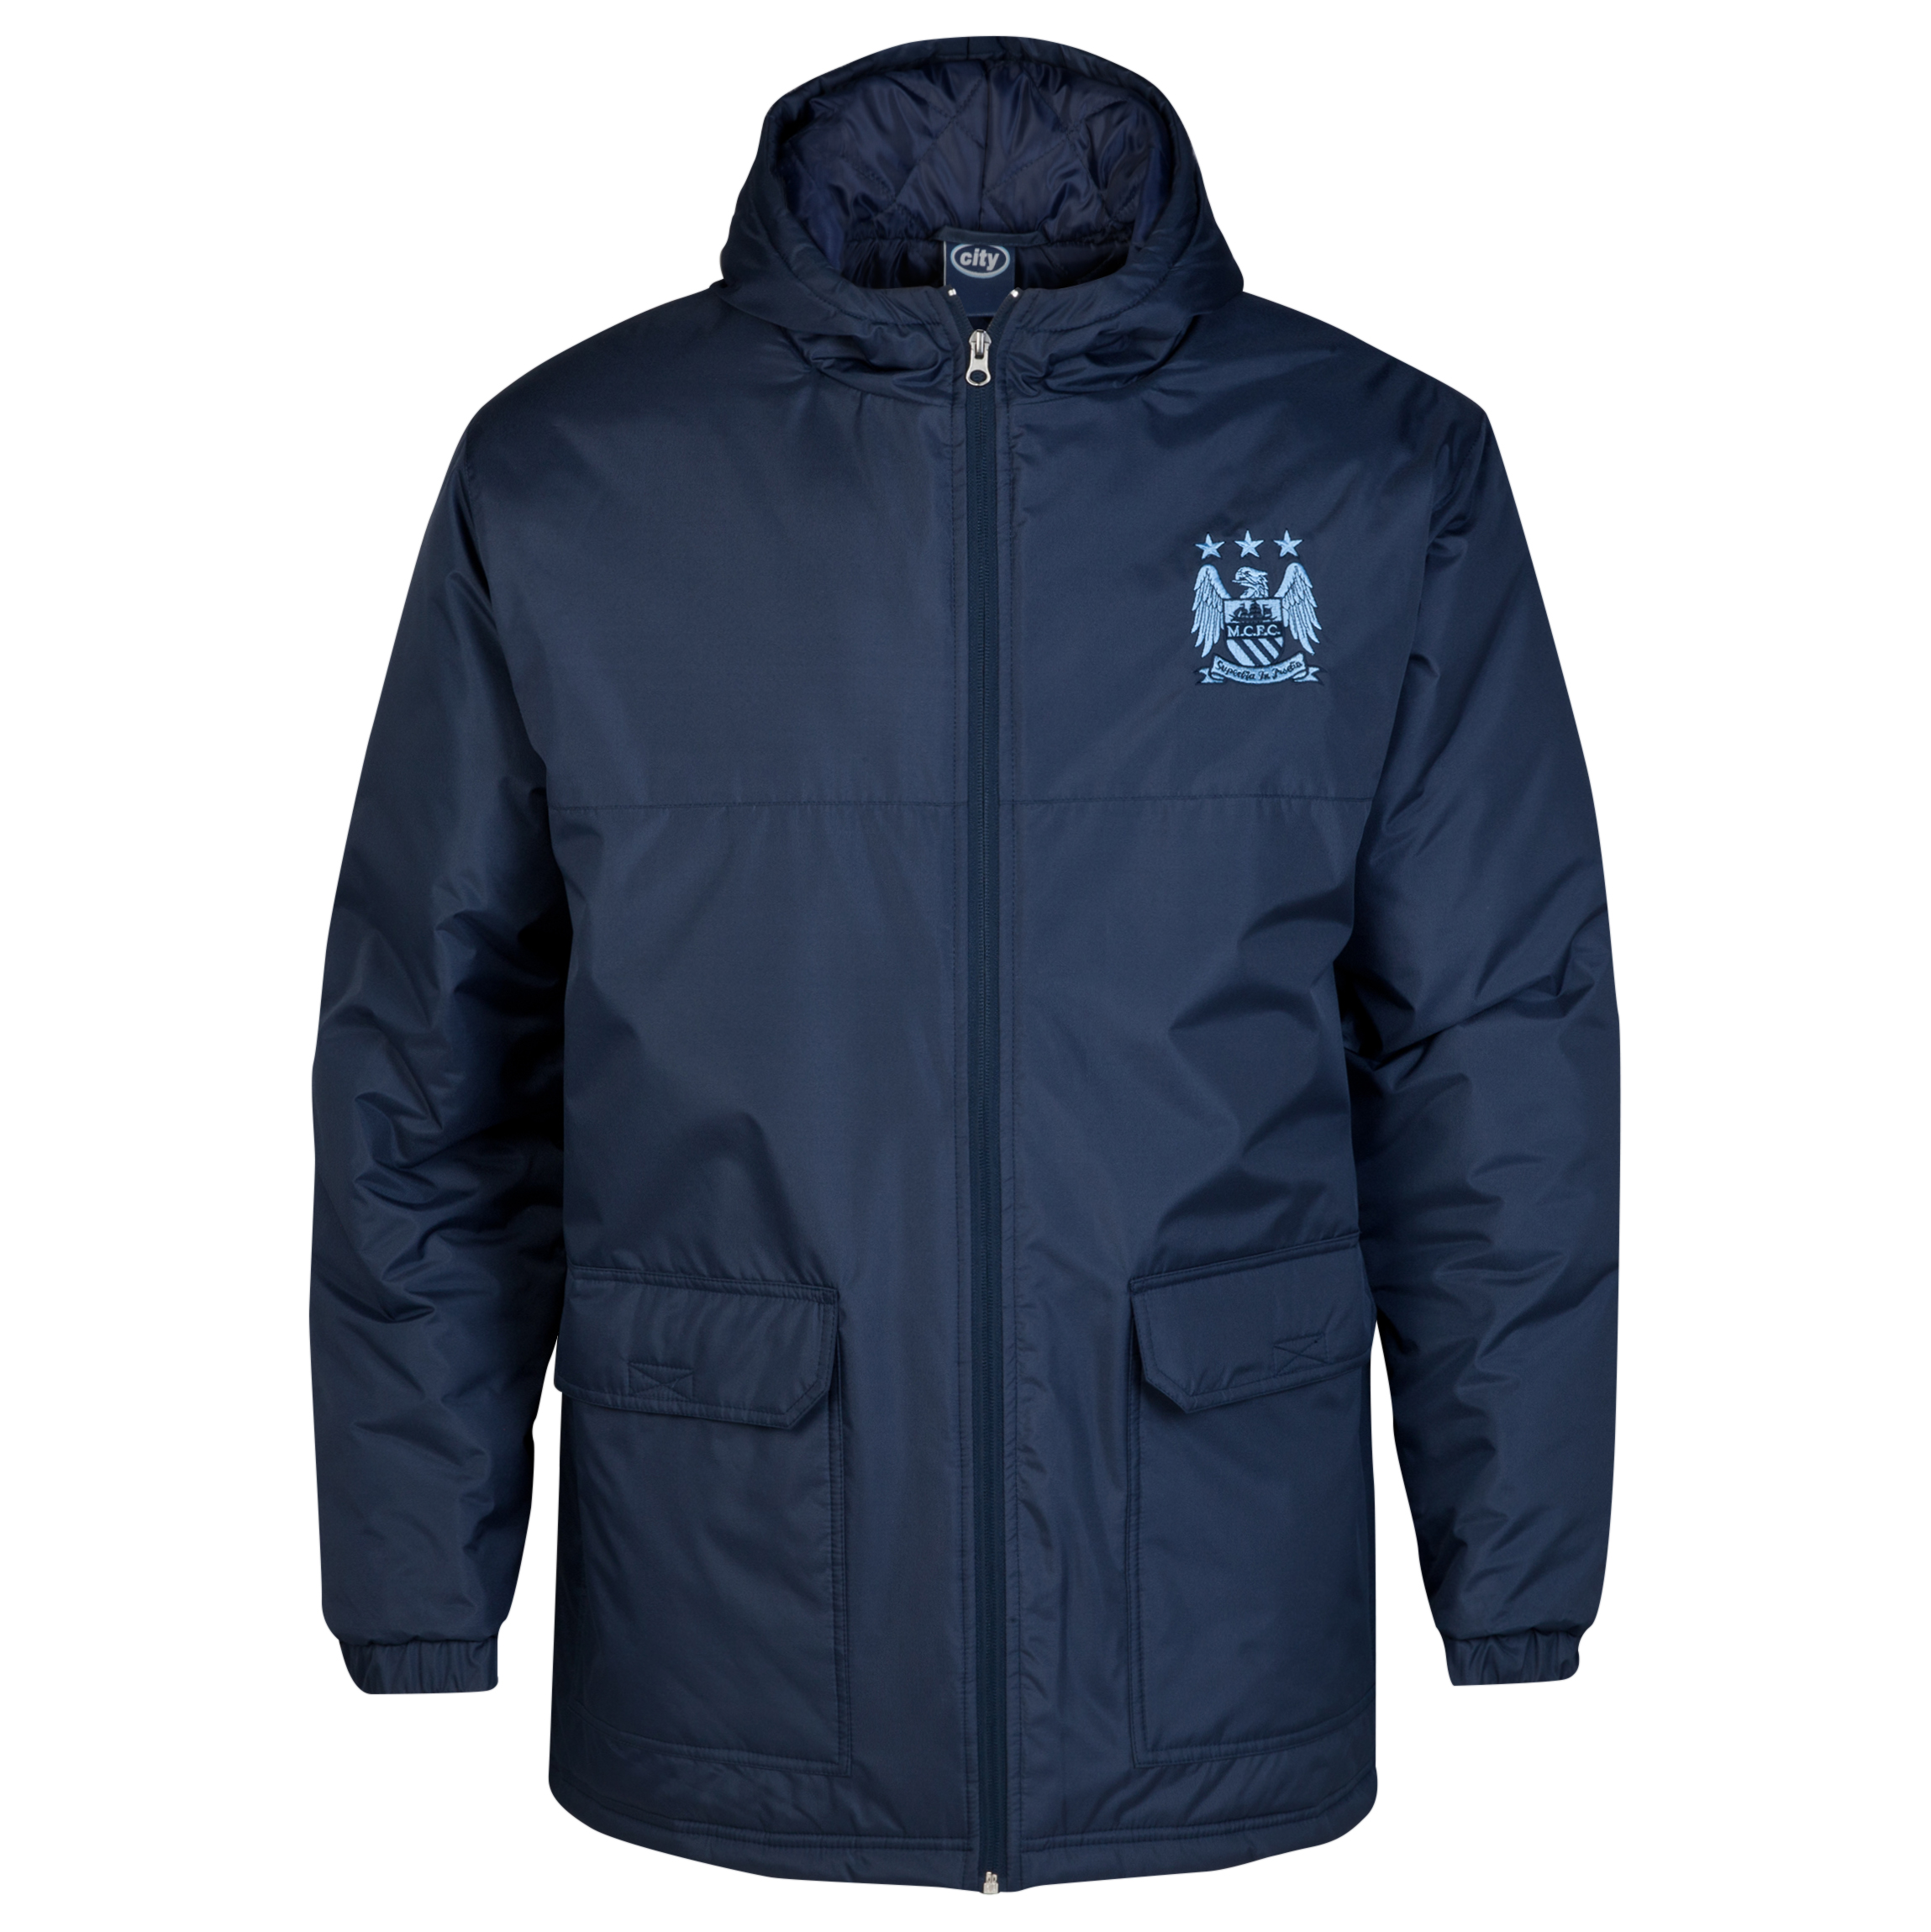 Manchester City Padded Jacket - Navy - Infant Boys